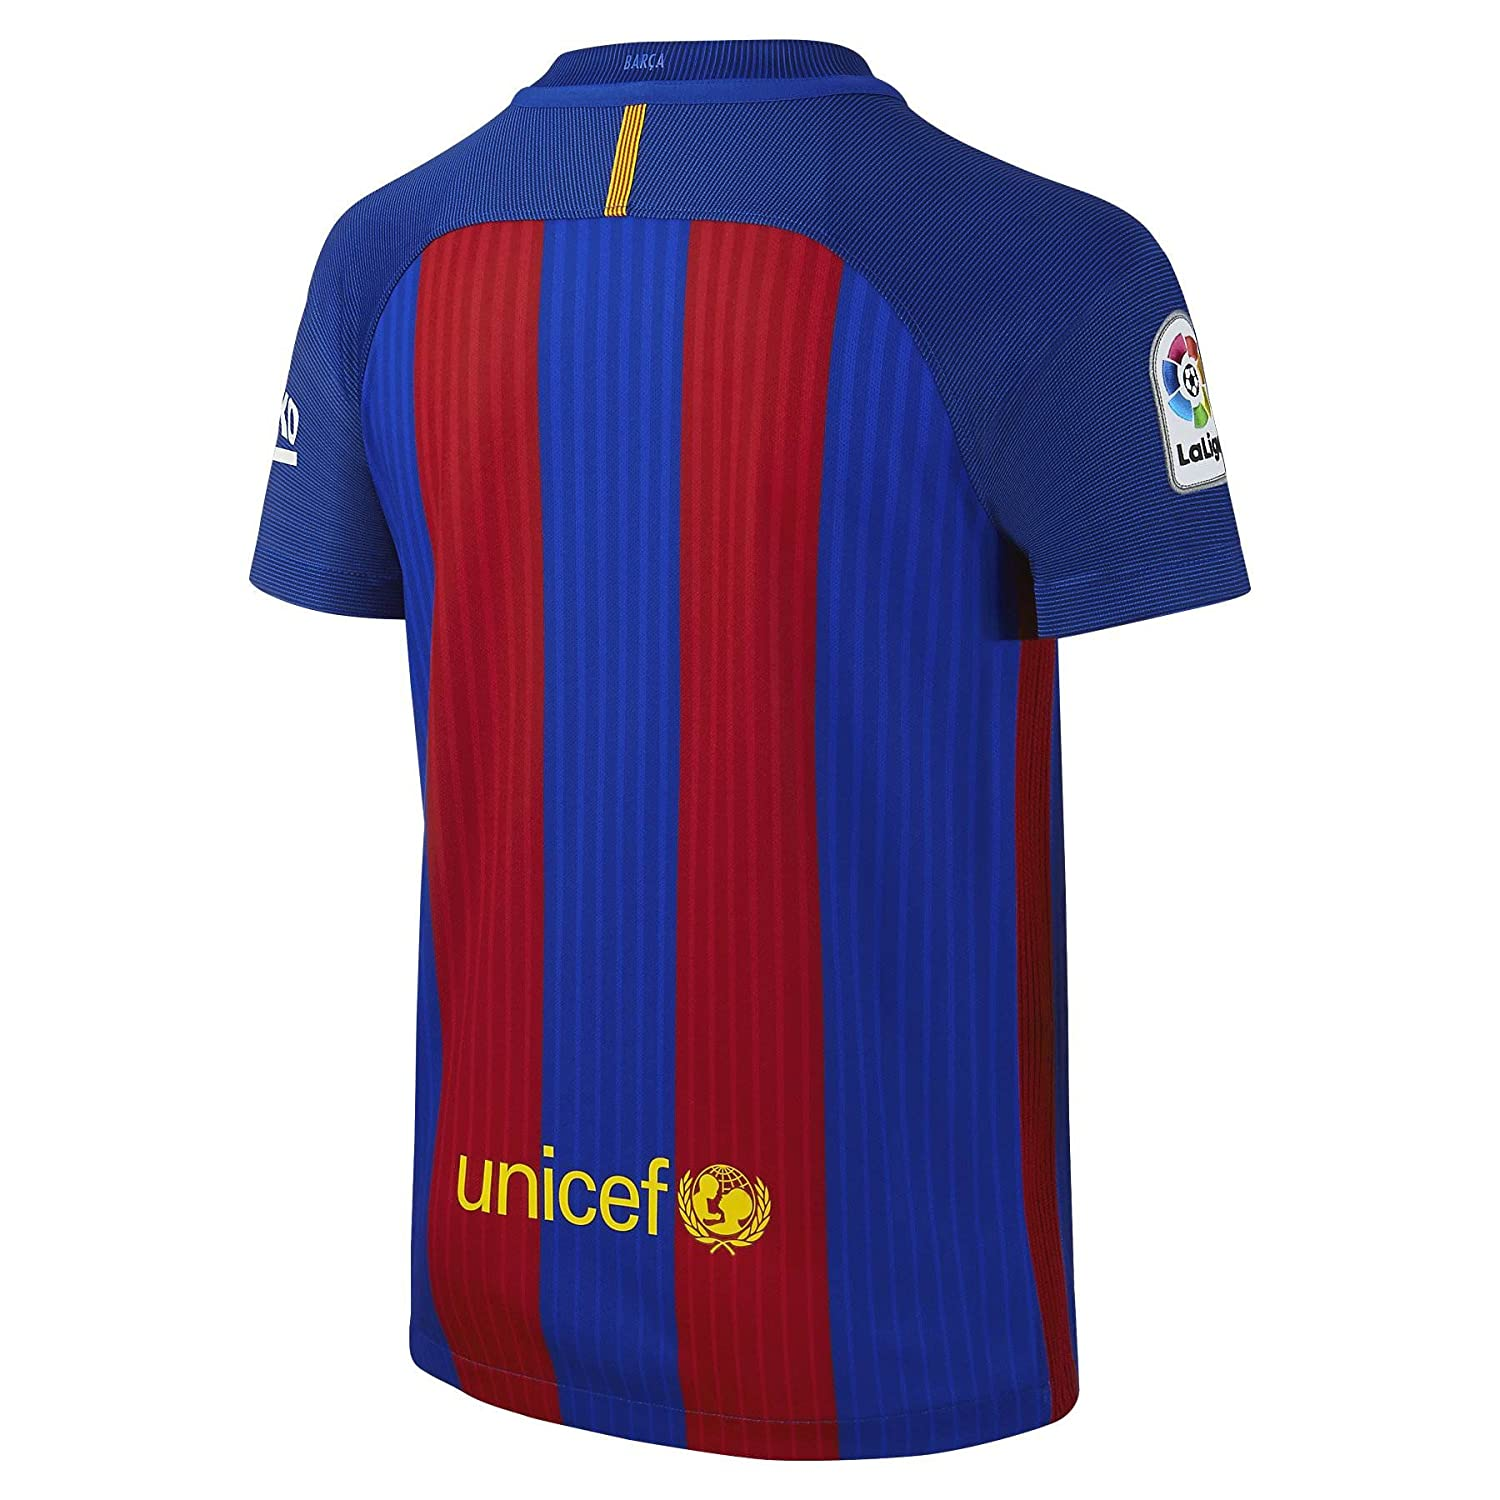 8fd545d45 Amazon.com : 2016-17 Barcelona Home Shirt (Messi 10) : Clothing